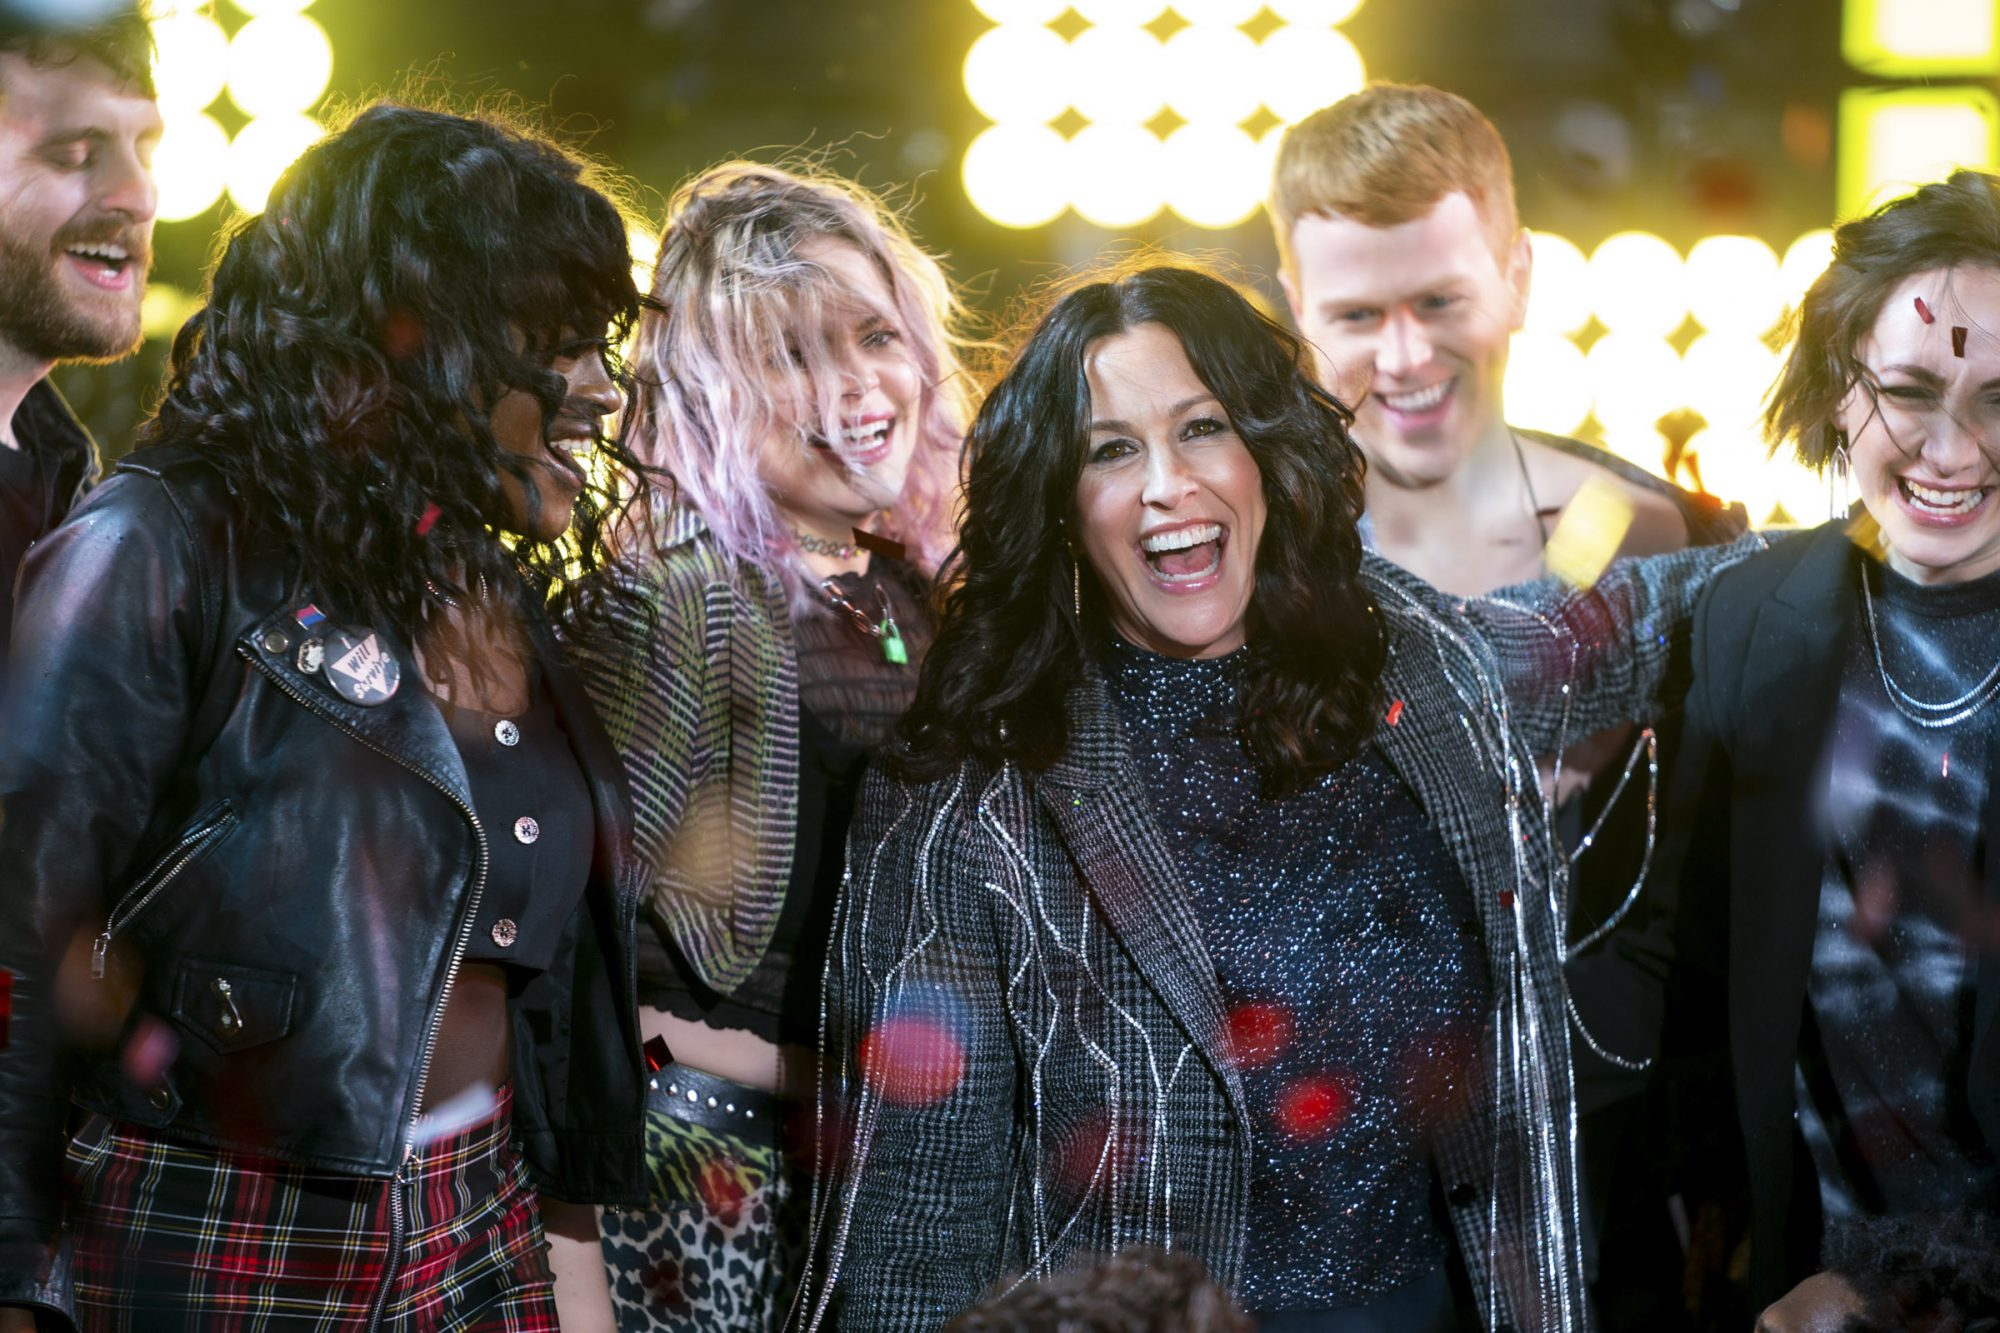 Alanis Morissette and the Jagged Little Pill cast